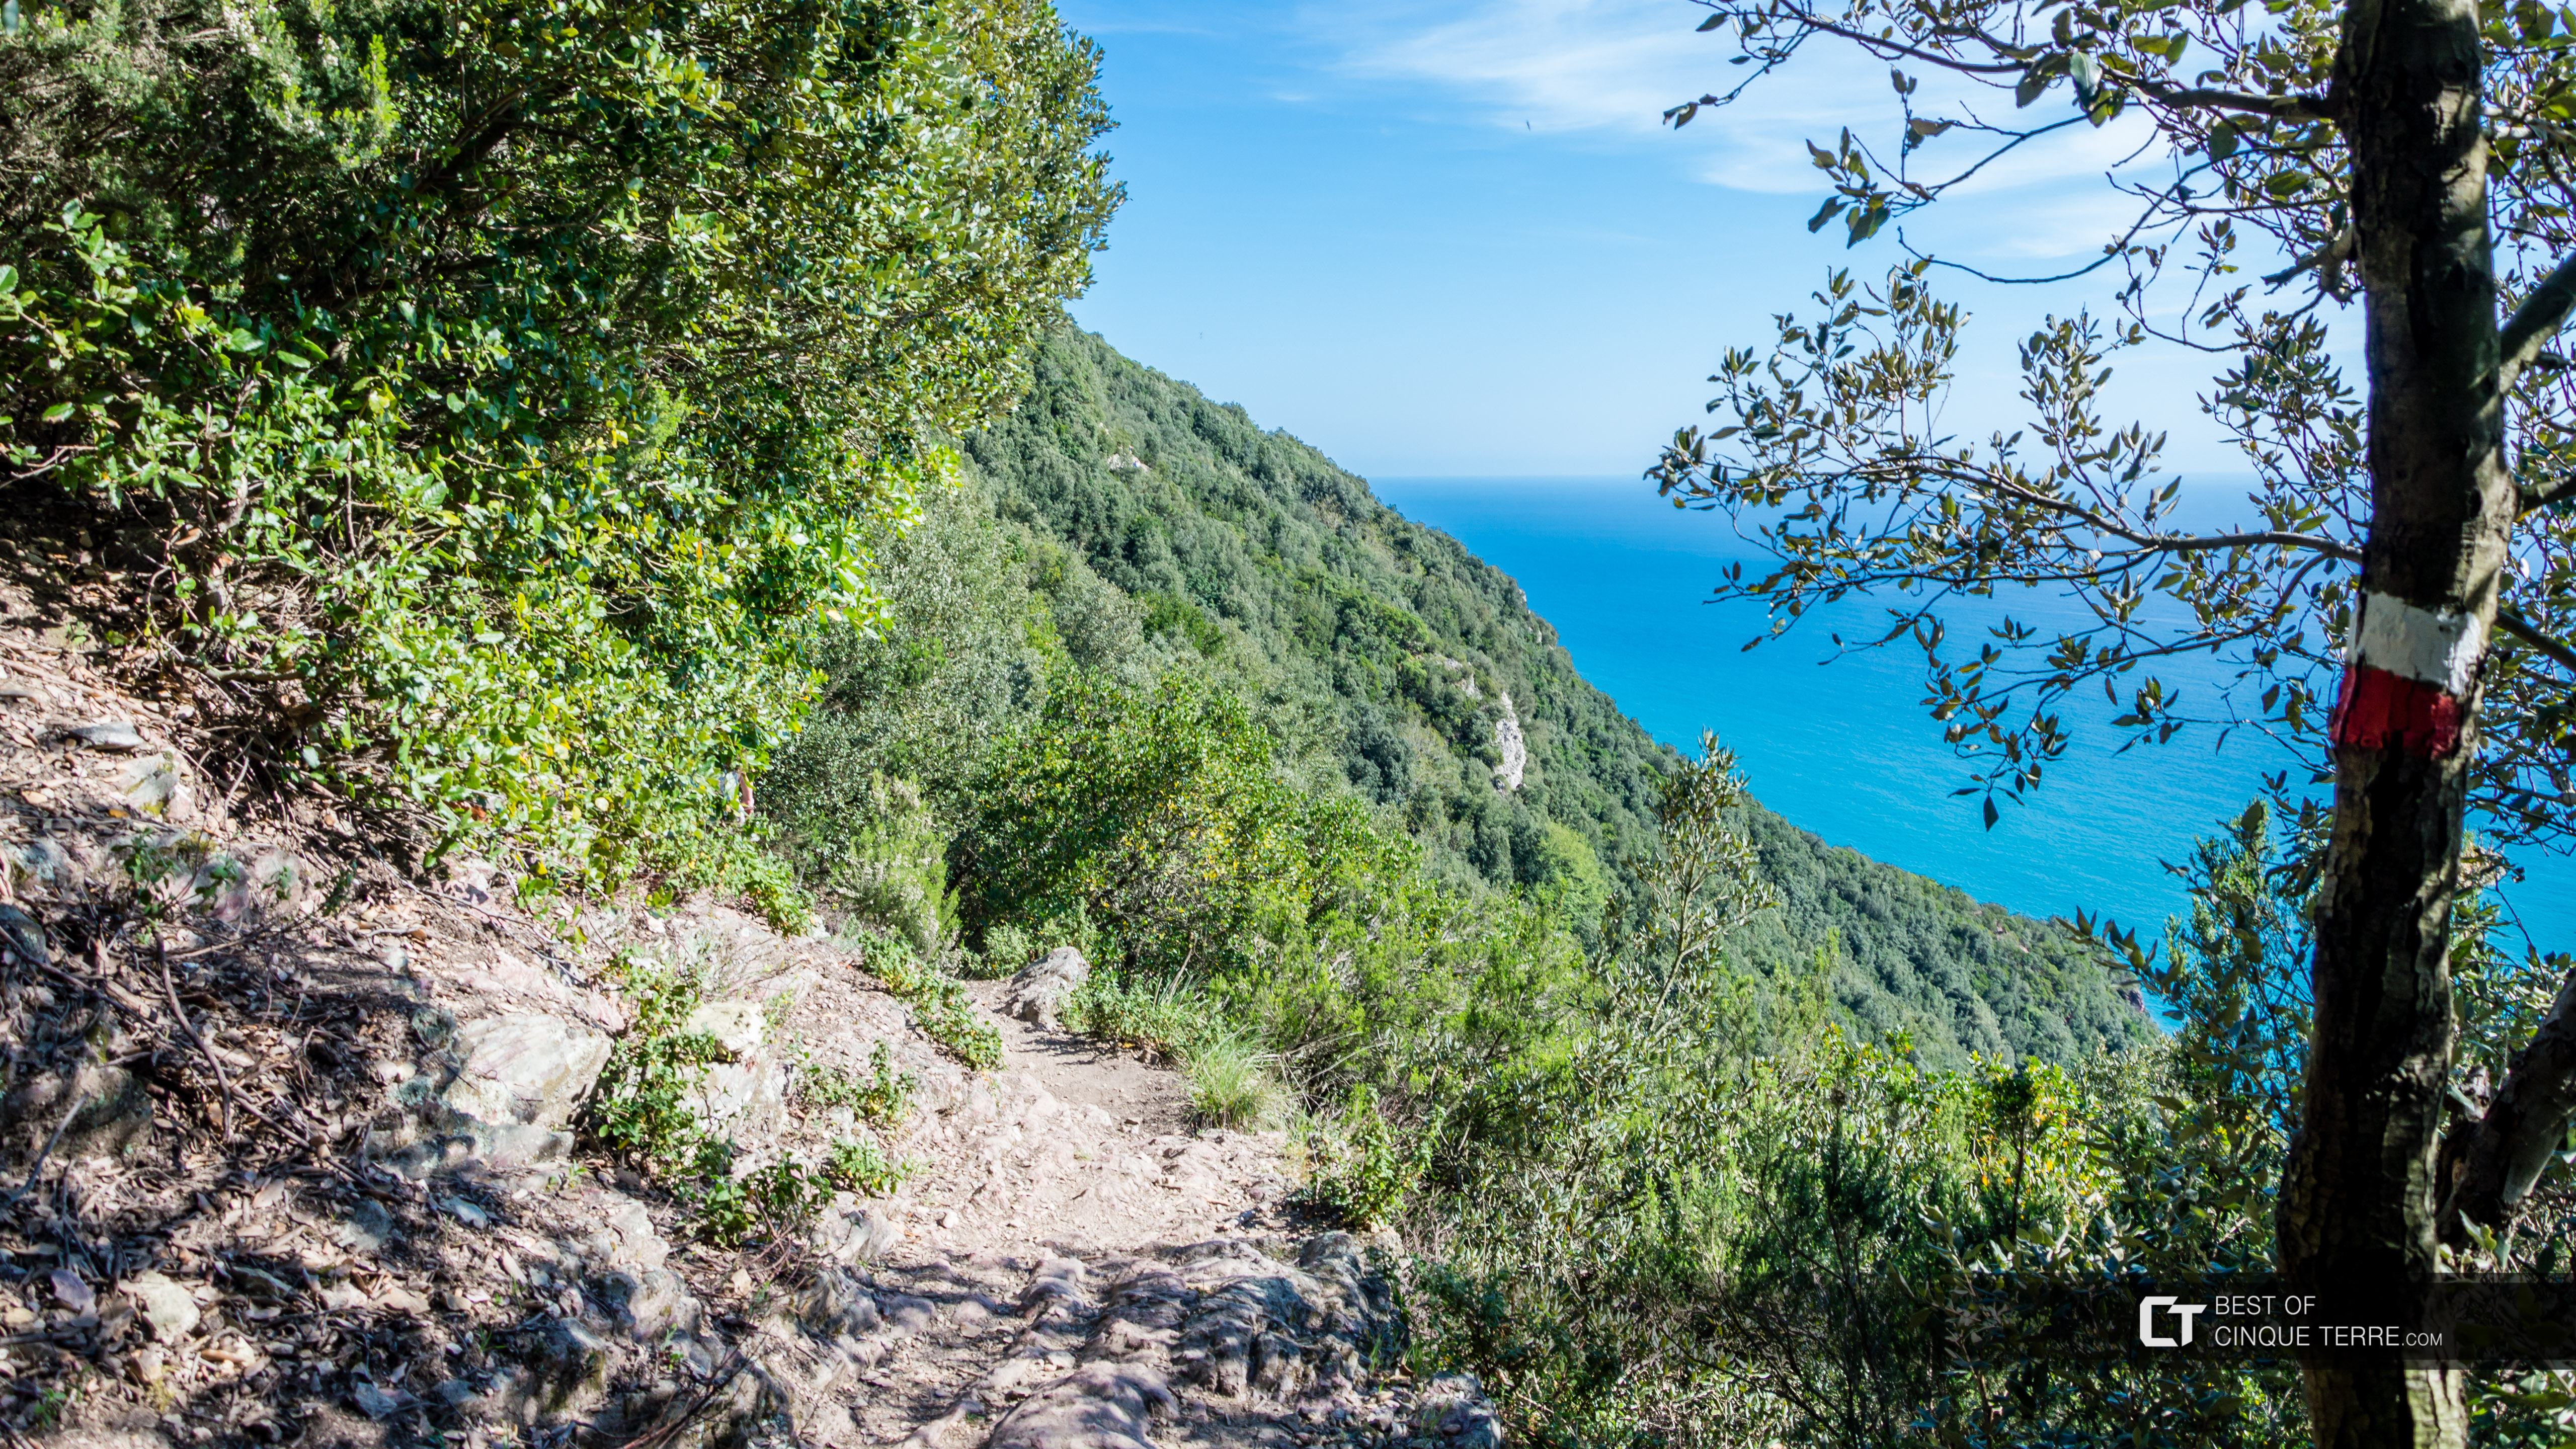 The path from Riomaggiore to Portovenere, Trails, Cinque Terre, Italy